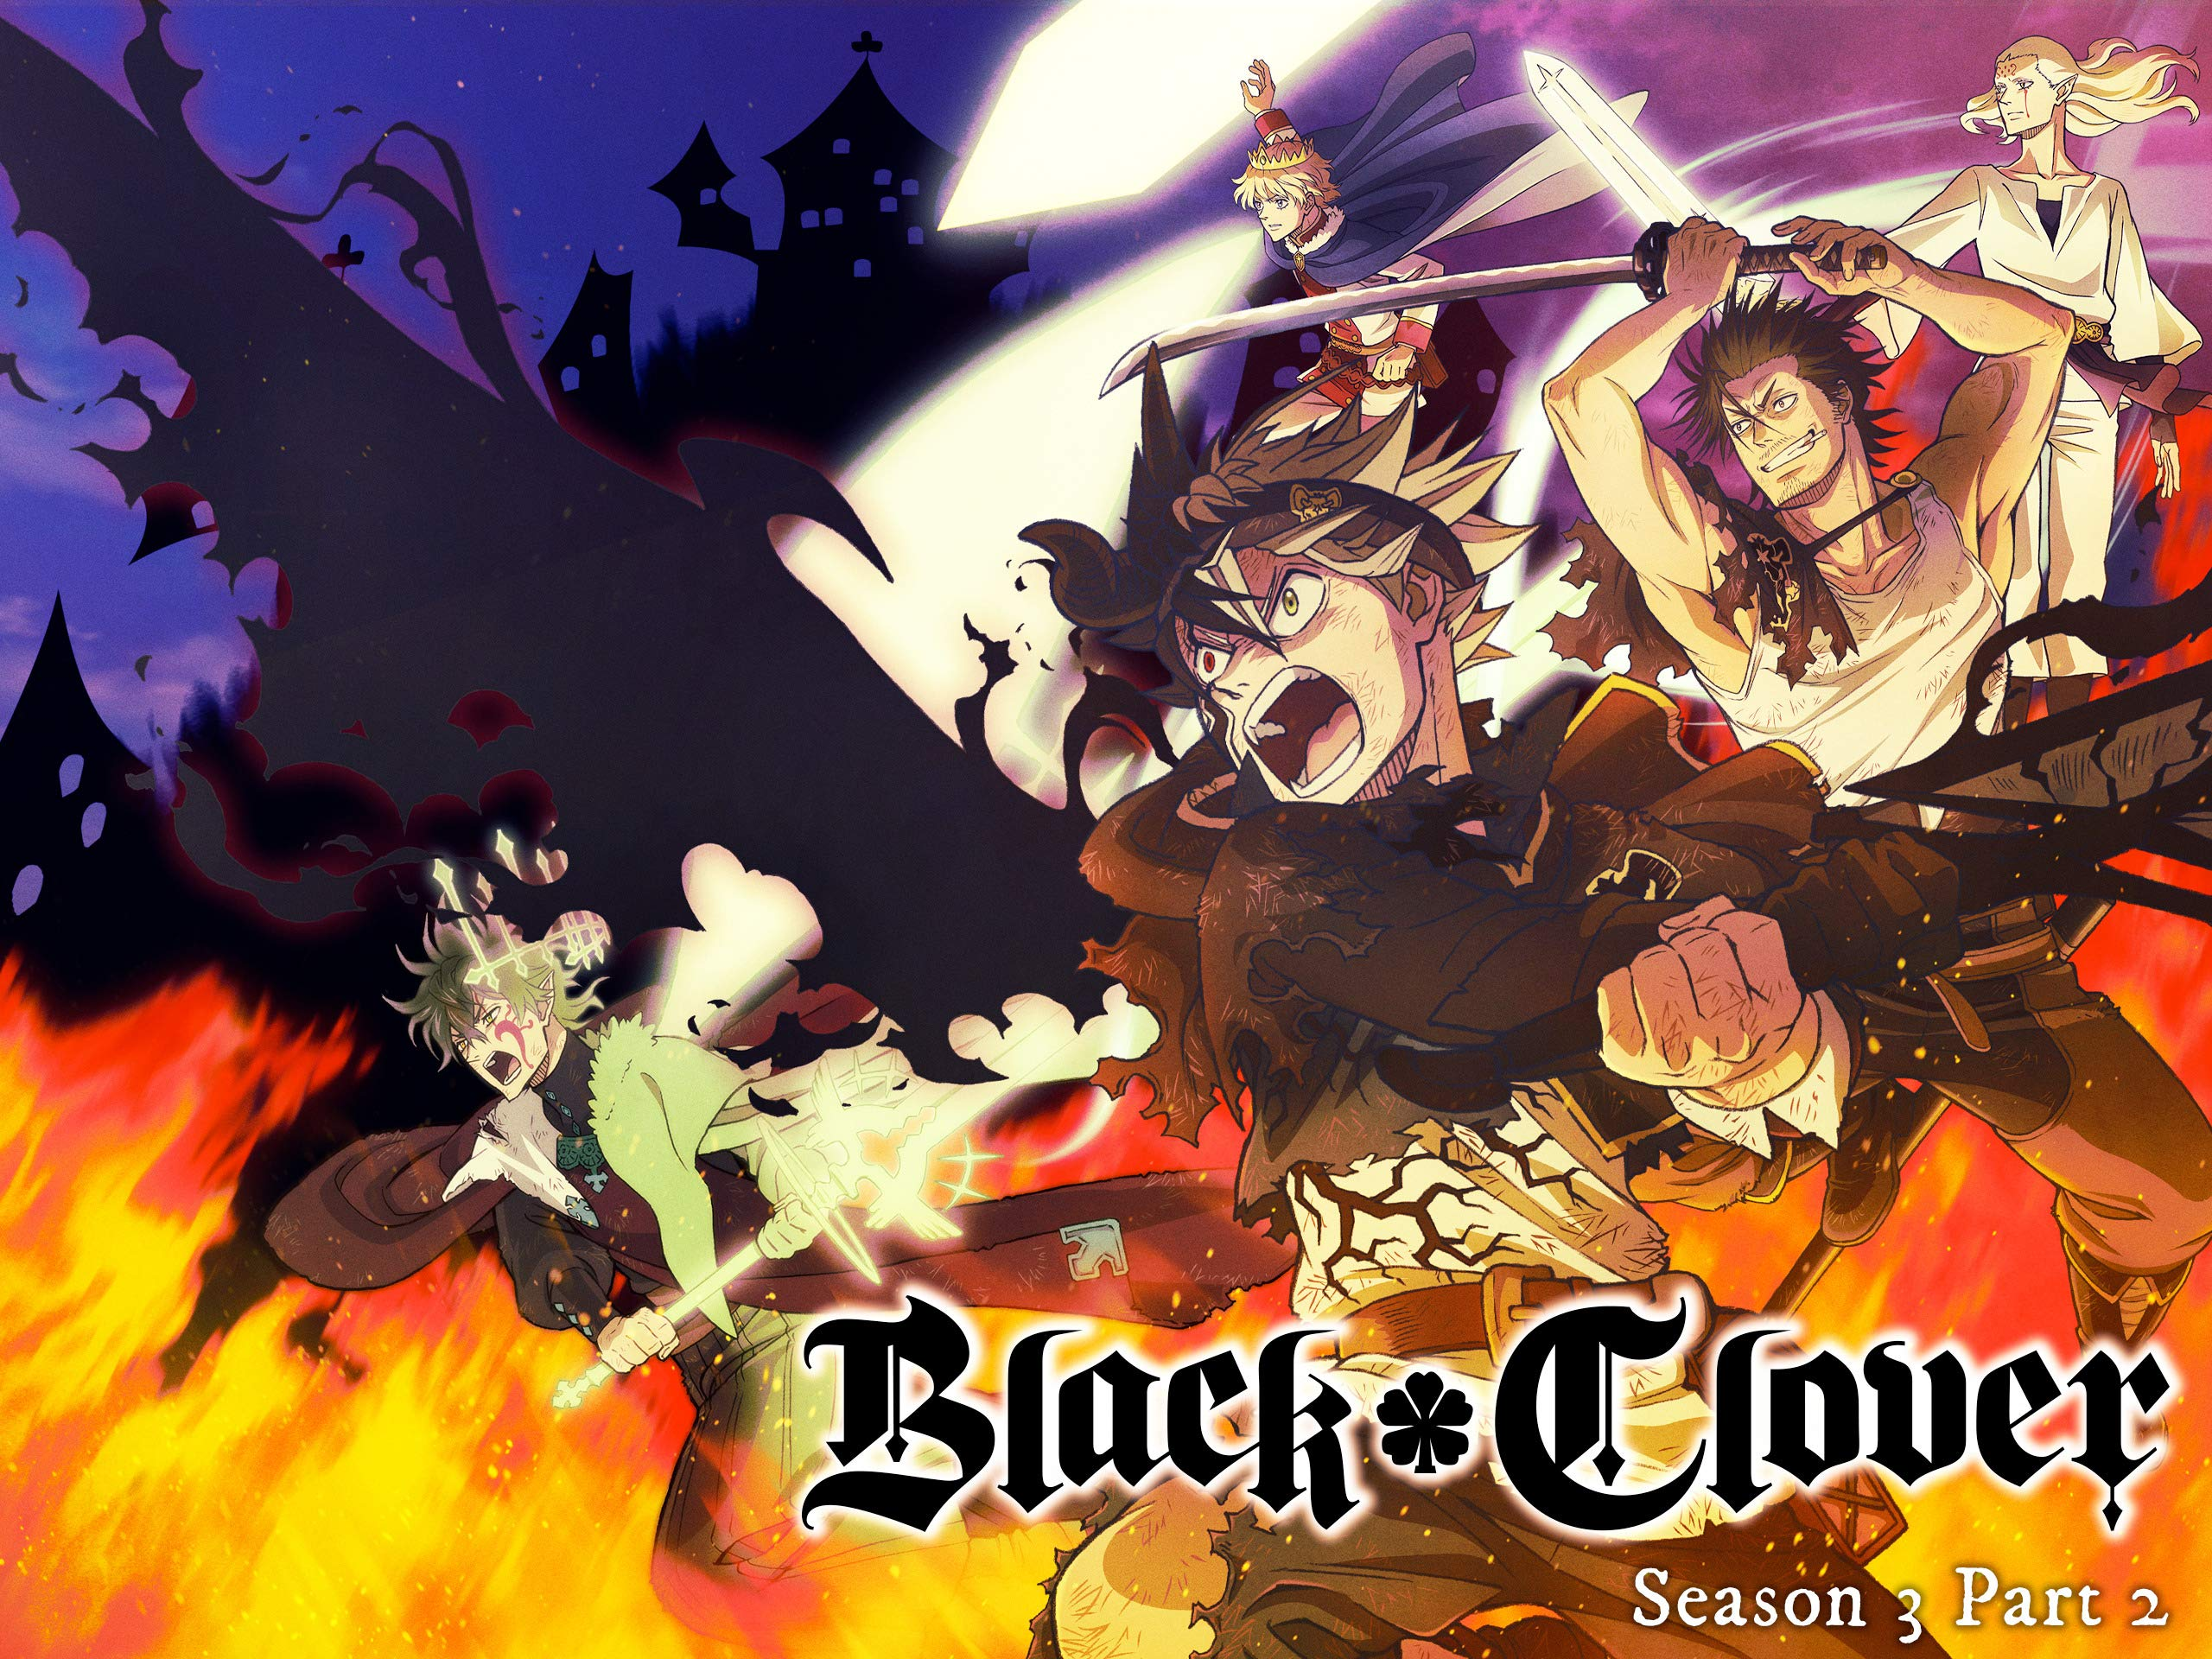 Watch Black Clover Season 2 Pt 4 Original Japanese Version Prime Video One of them was to. watch black clover season 2 pt 4